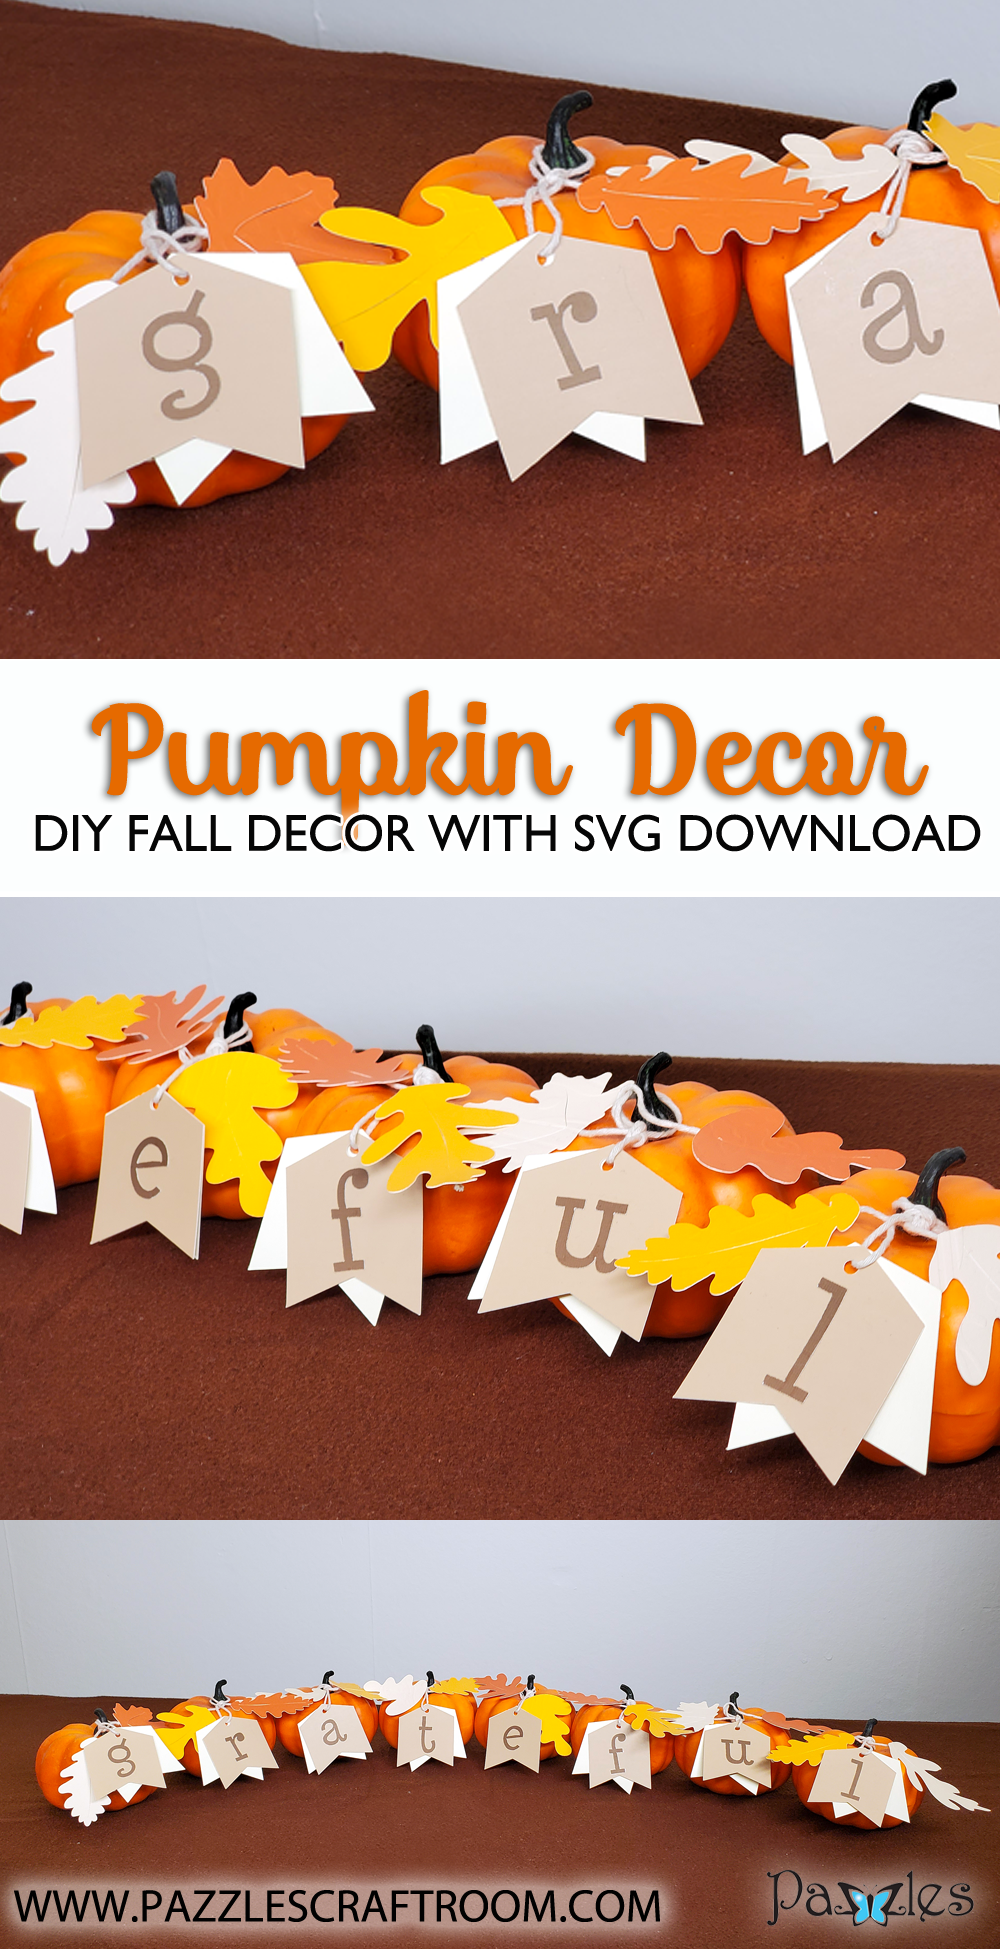 Pazzles DIY Grateful Pumpkin Decor with instant SVG download. Compatible with all major electronic cutters including Pazzles Inspiration, Cricut, and SIlhouette Cameo. Design by Renee Smart.